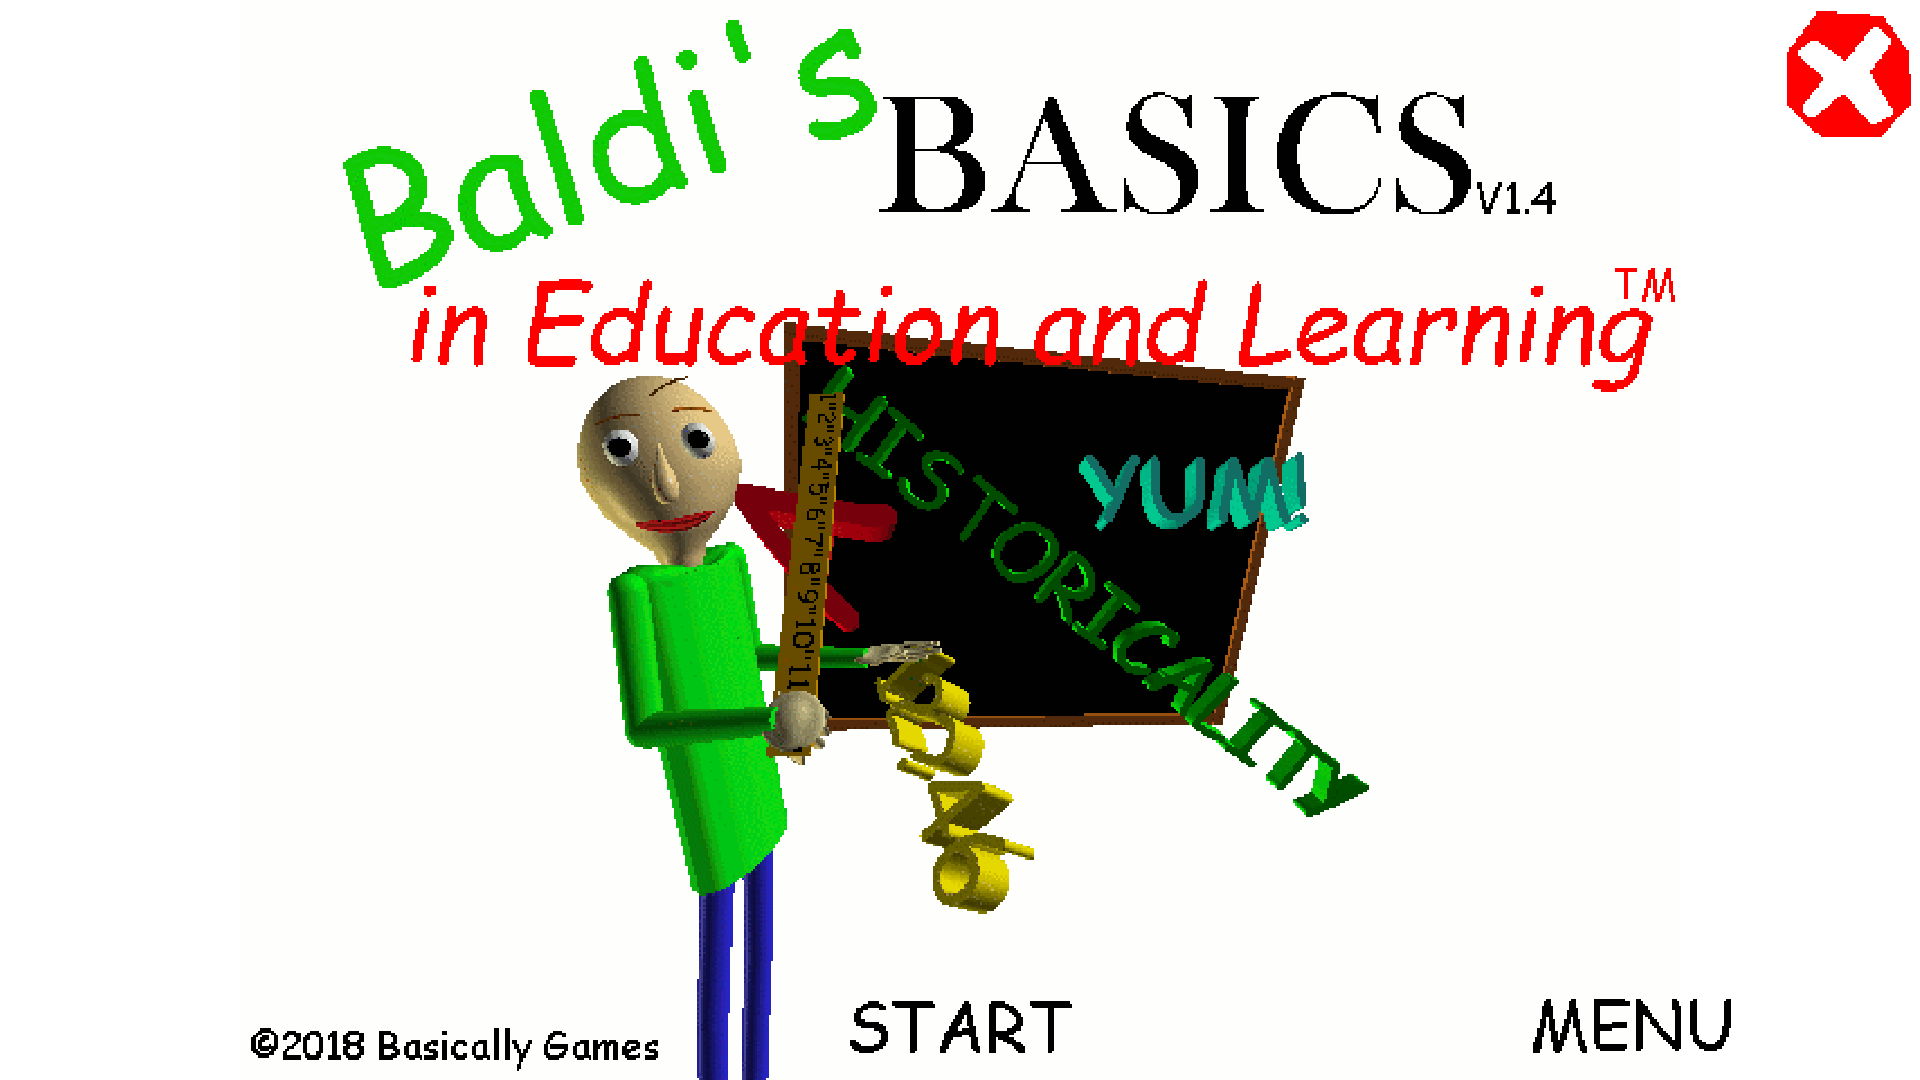 Baldi's Basics in Education and Learning by mystman12 for